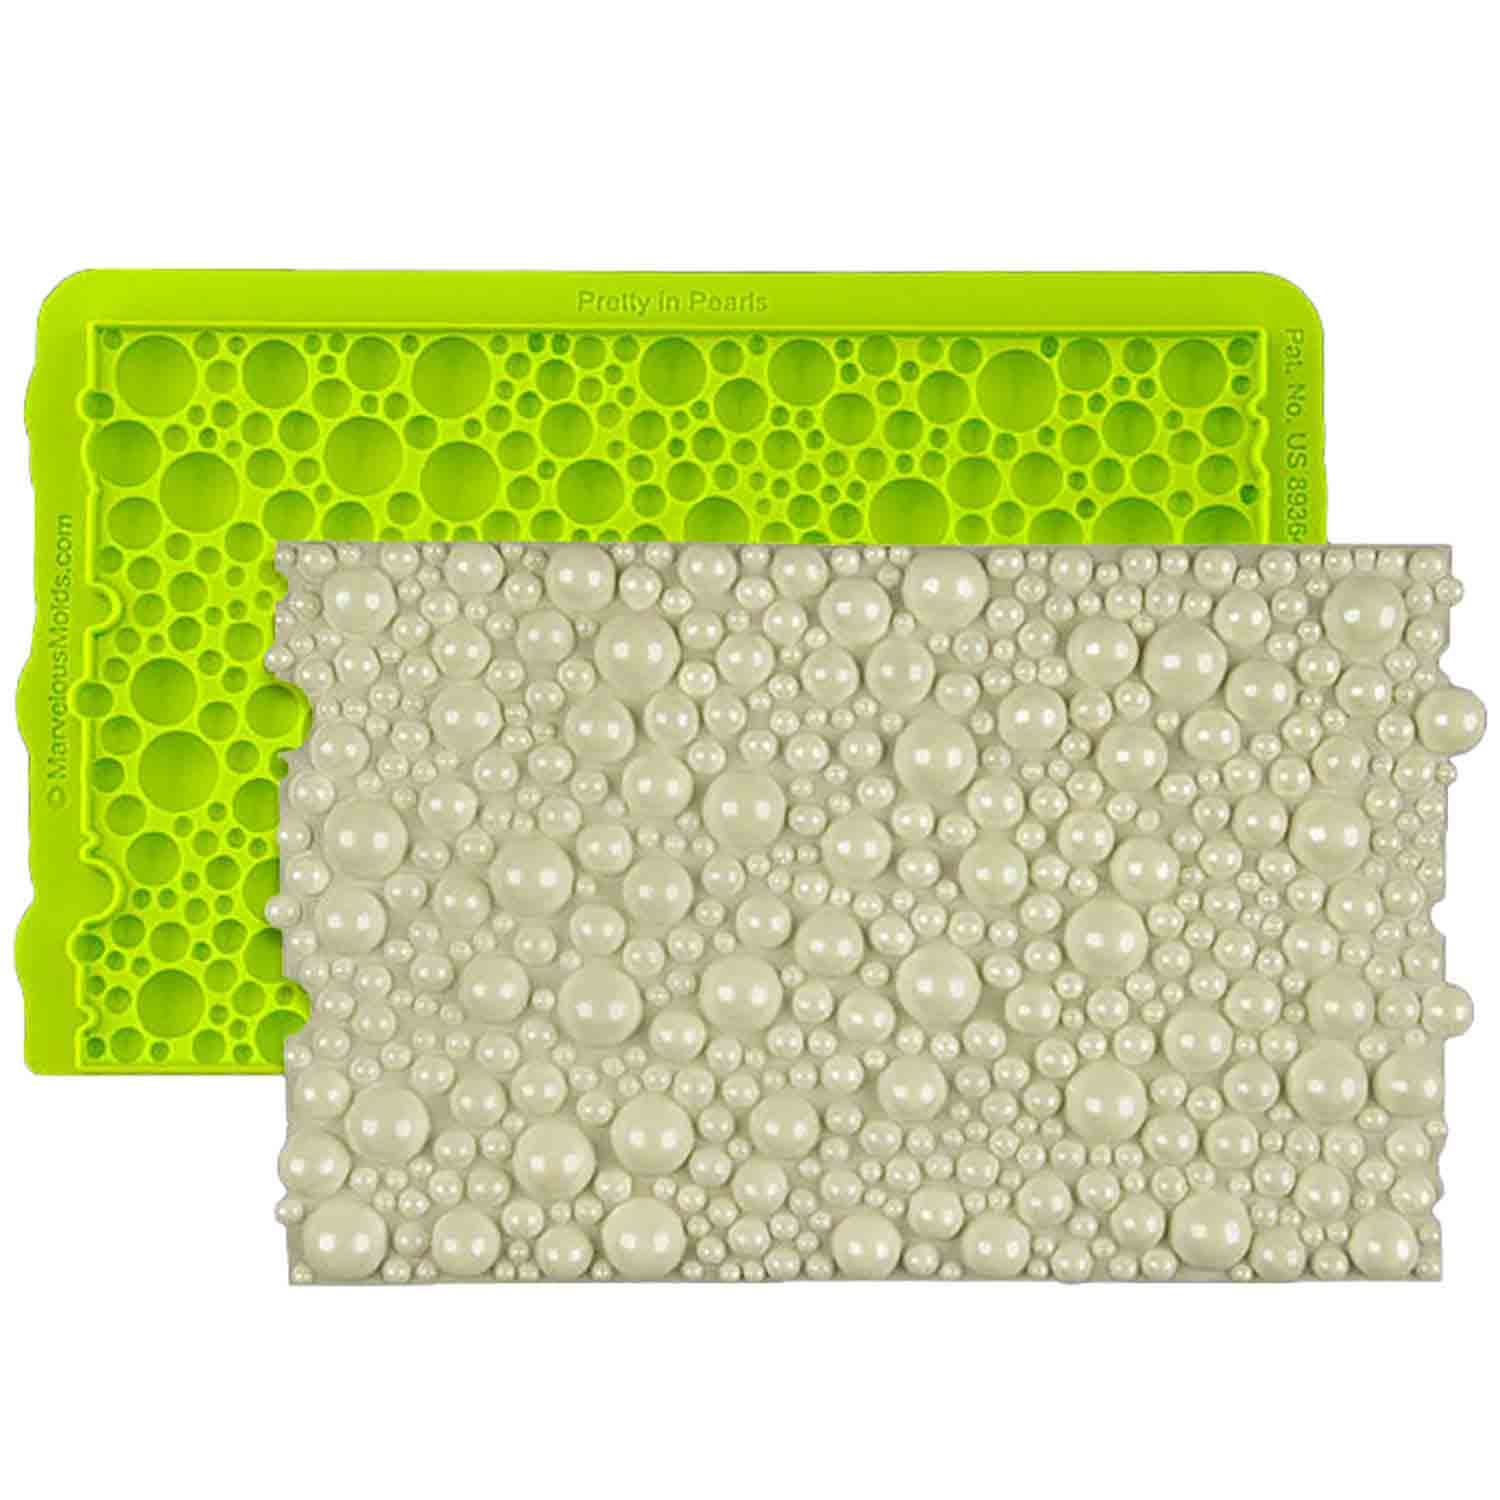 Pretty in Pearls Silicone Simpress Mold